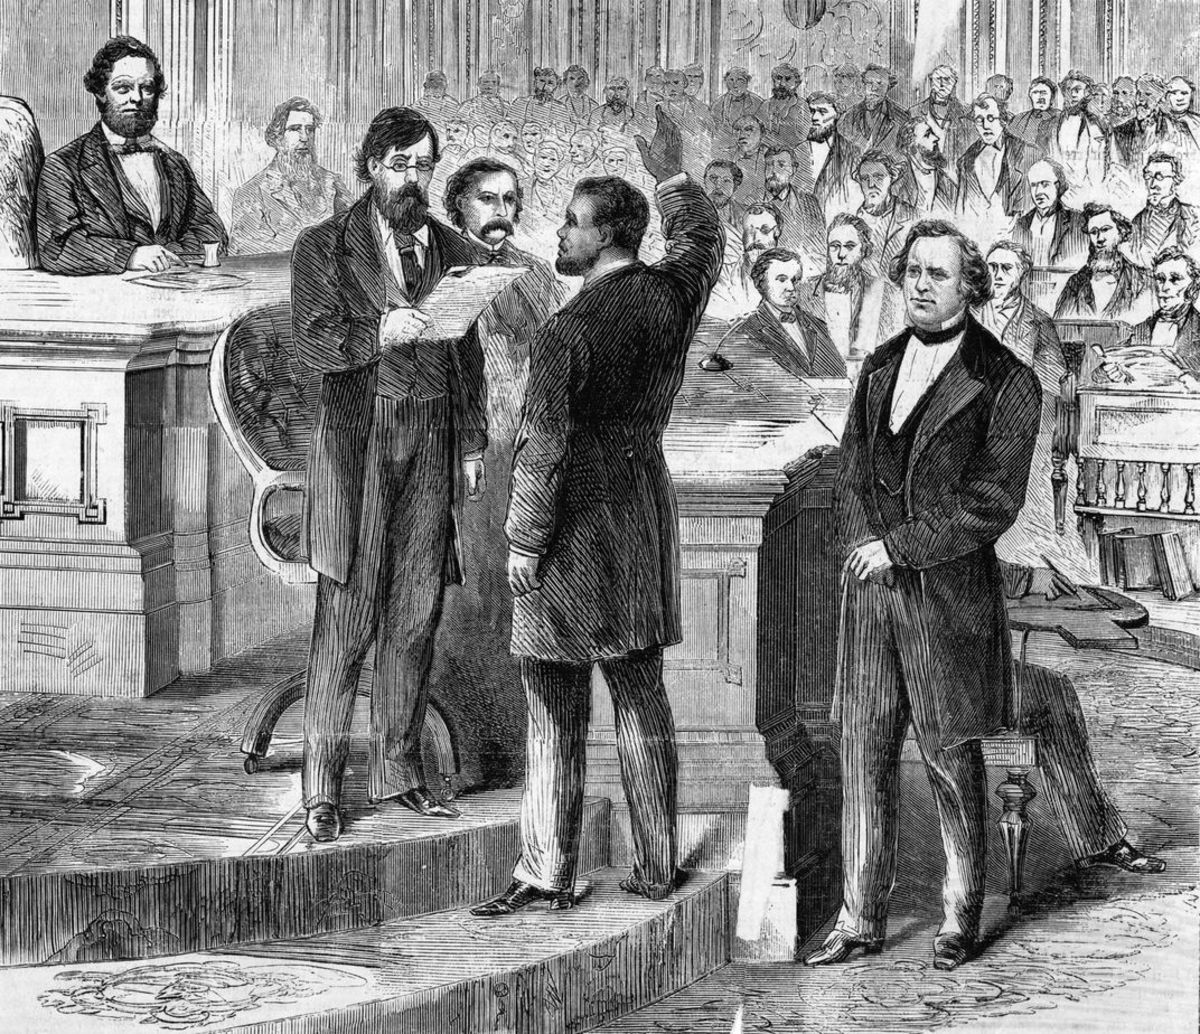 Hiram Rhodes Revels being sworn in as a U.S. Senator